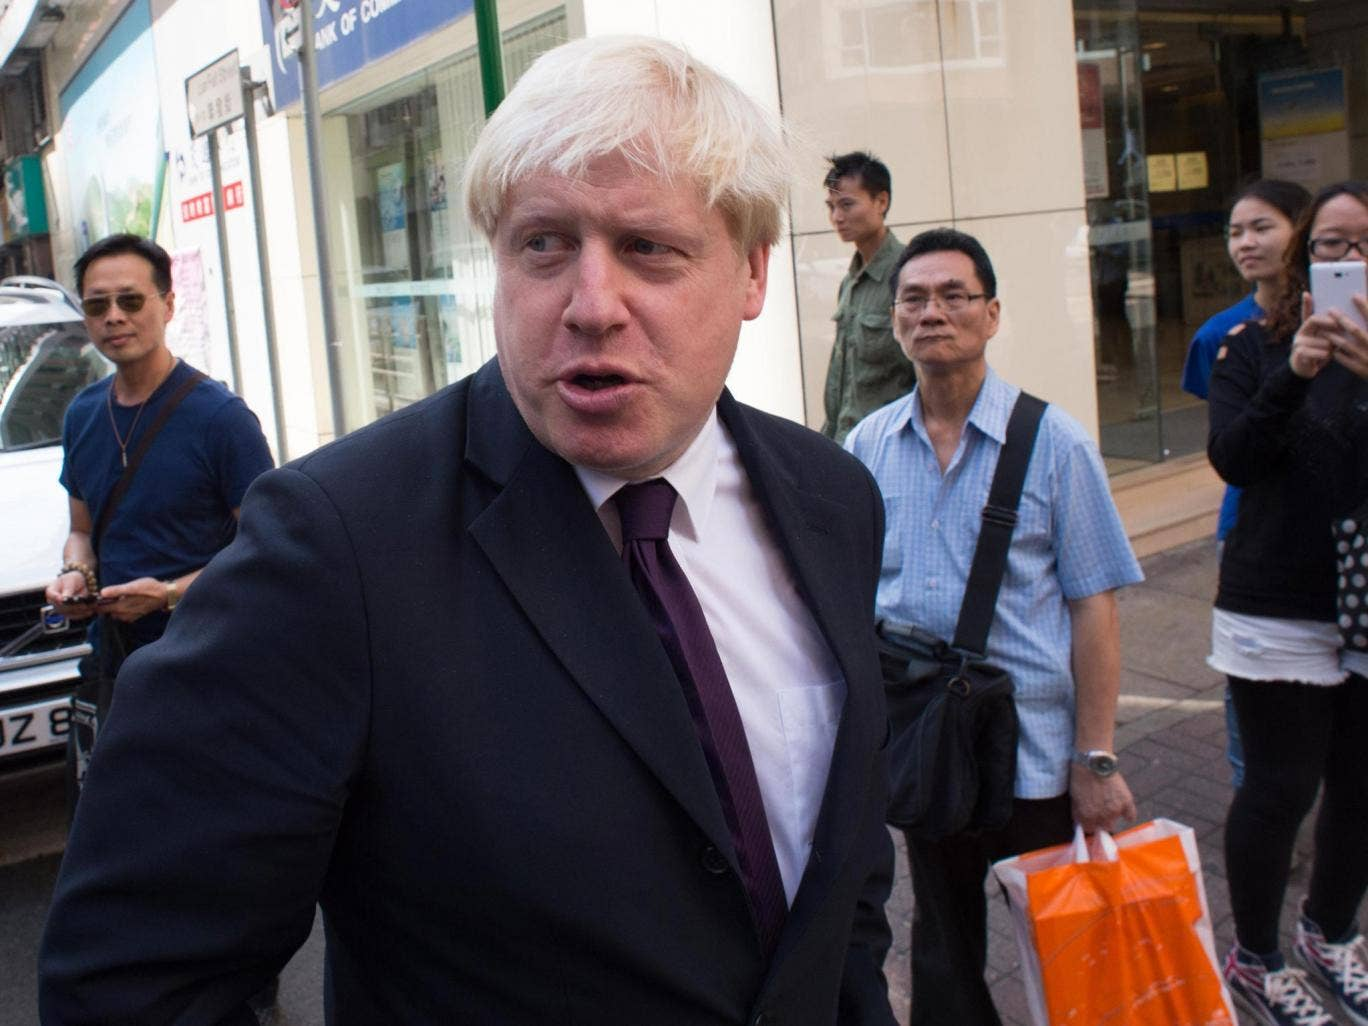 London Mayor Boris Johnson in Hong Kong on the final day of a week long visit to China to promote trade between the far east and London